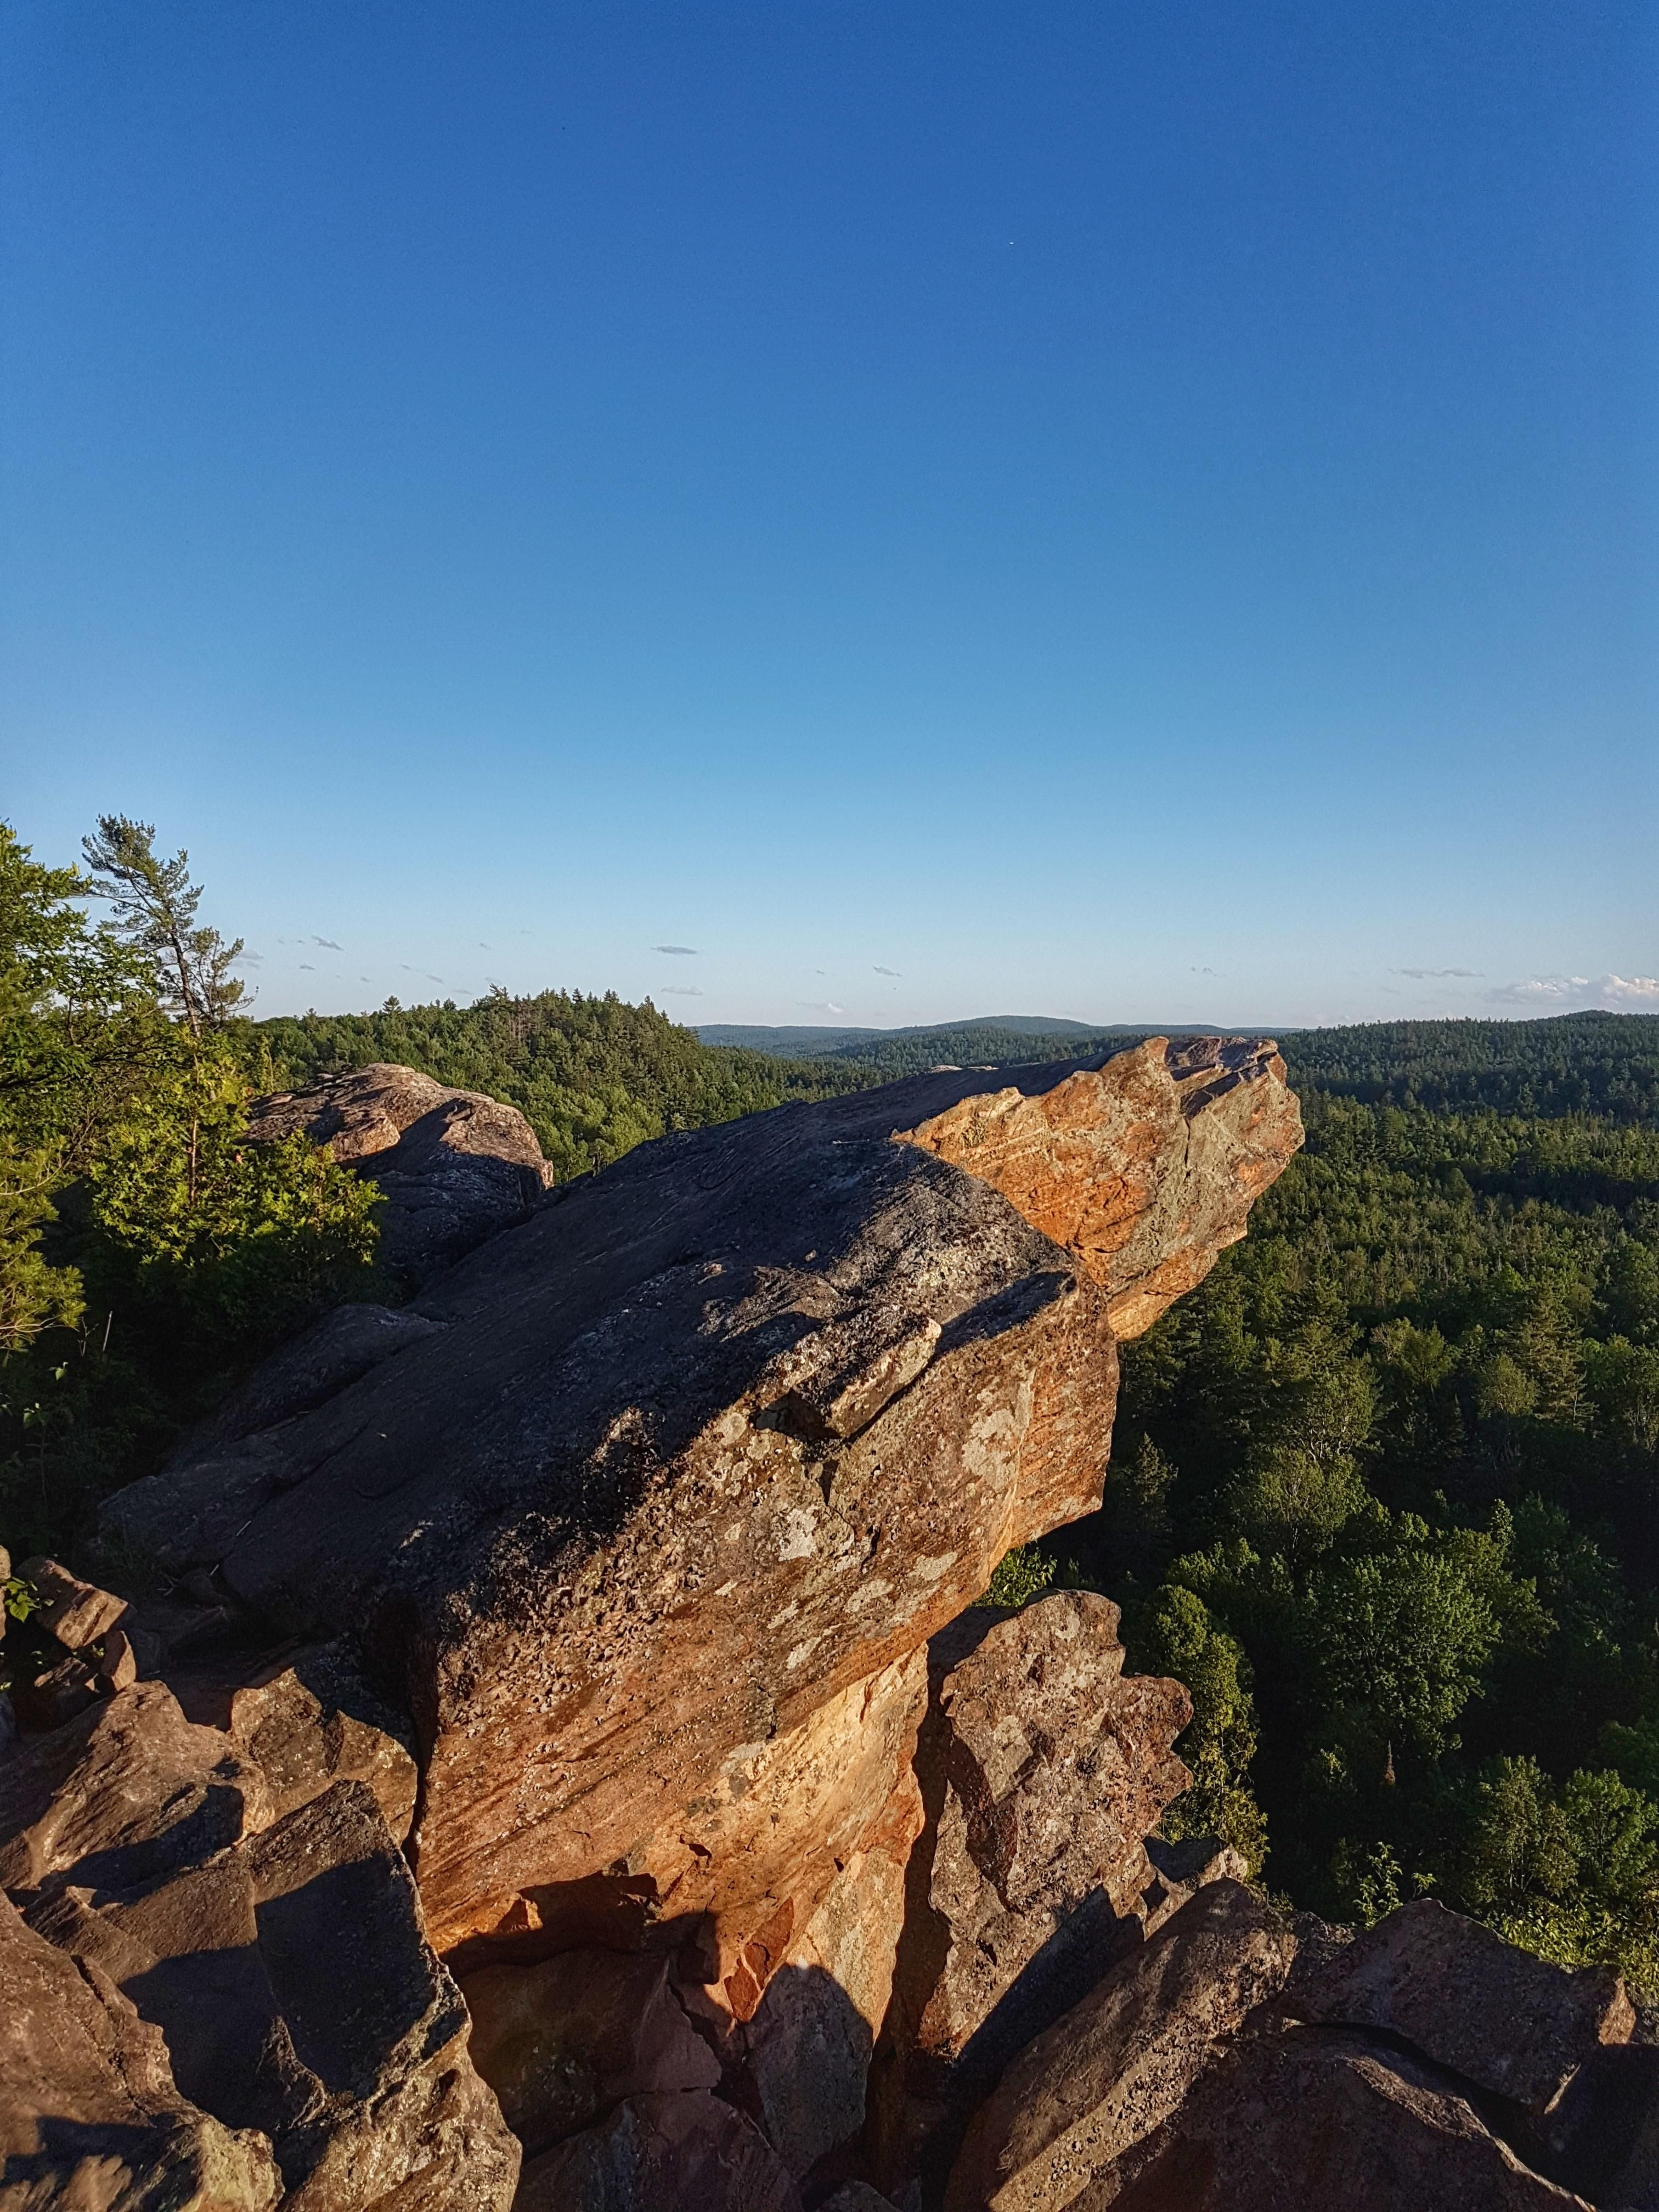 Eagles nest lookout point in calabogie ontario canada